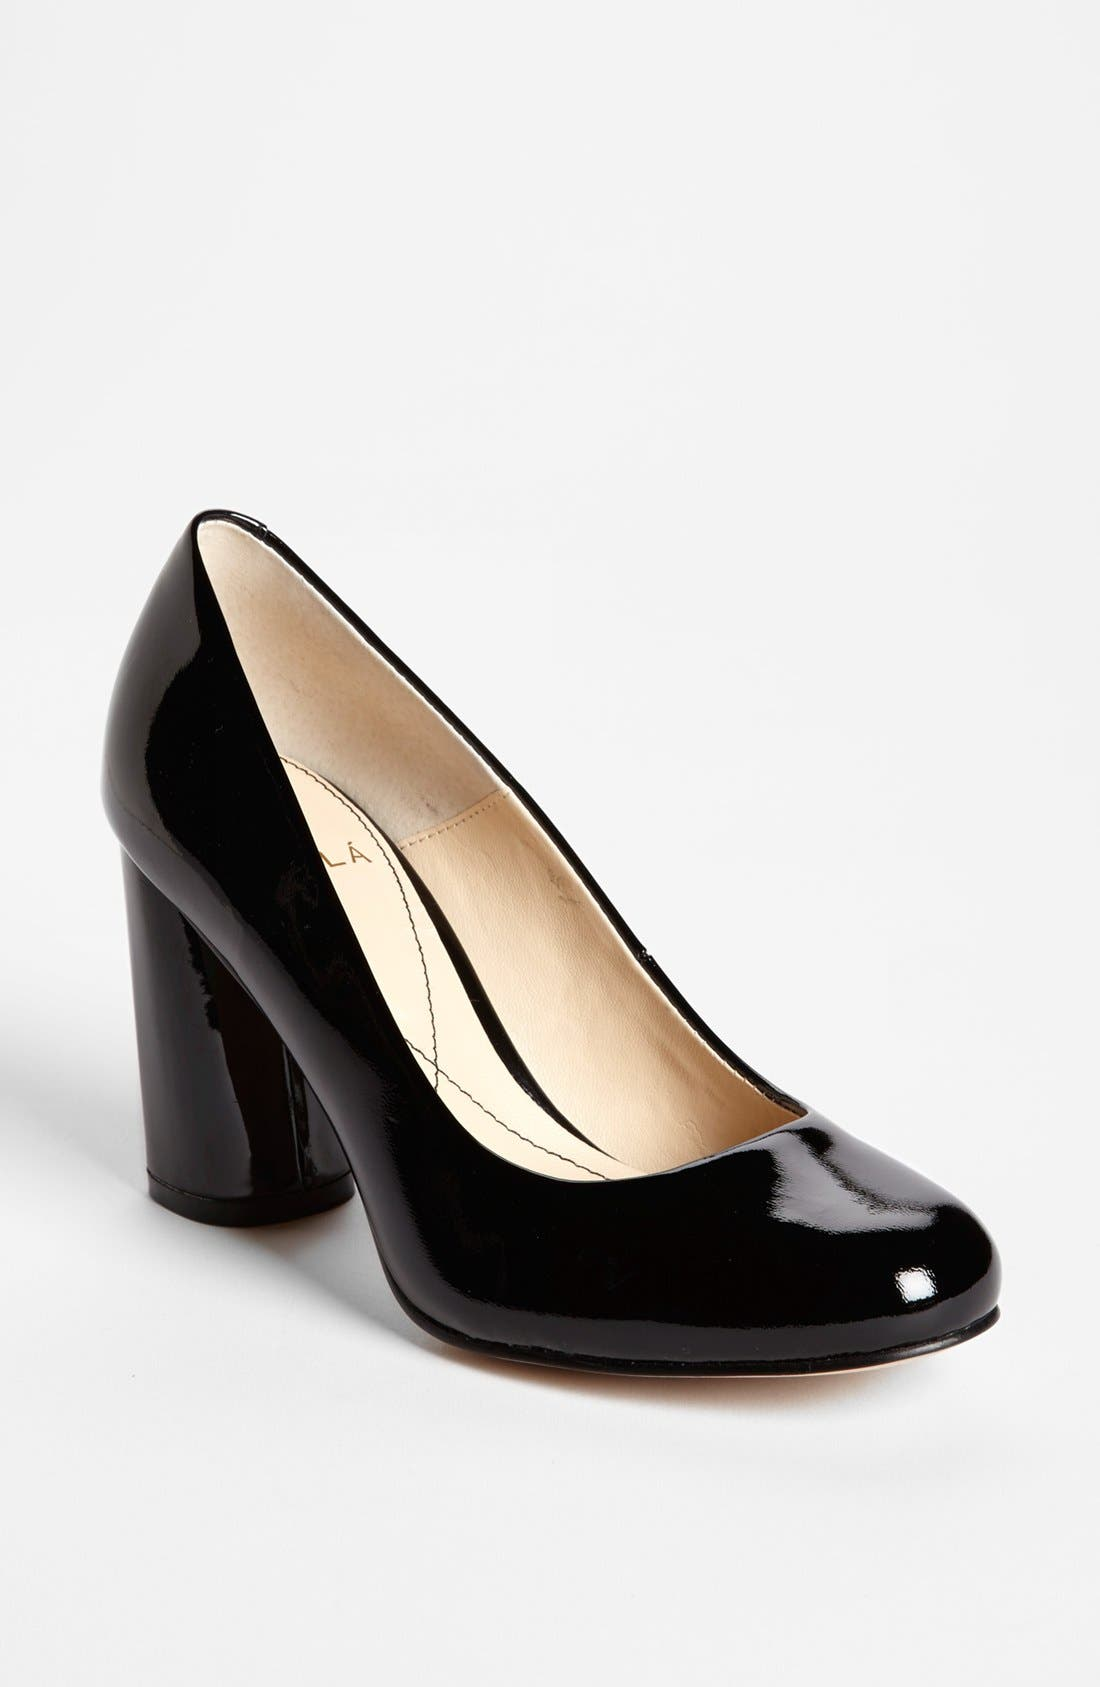 Alternate Image 1 Selected - Isolá 'Eleni' Patent Leather Pump